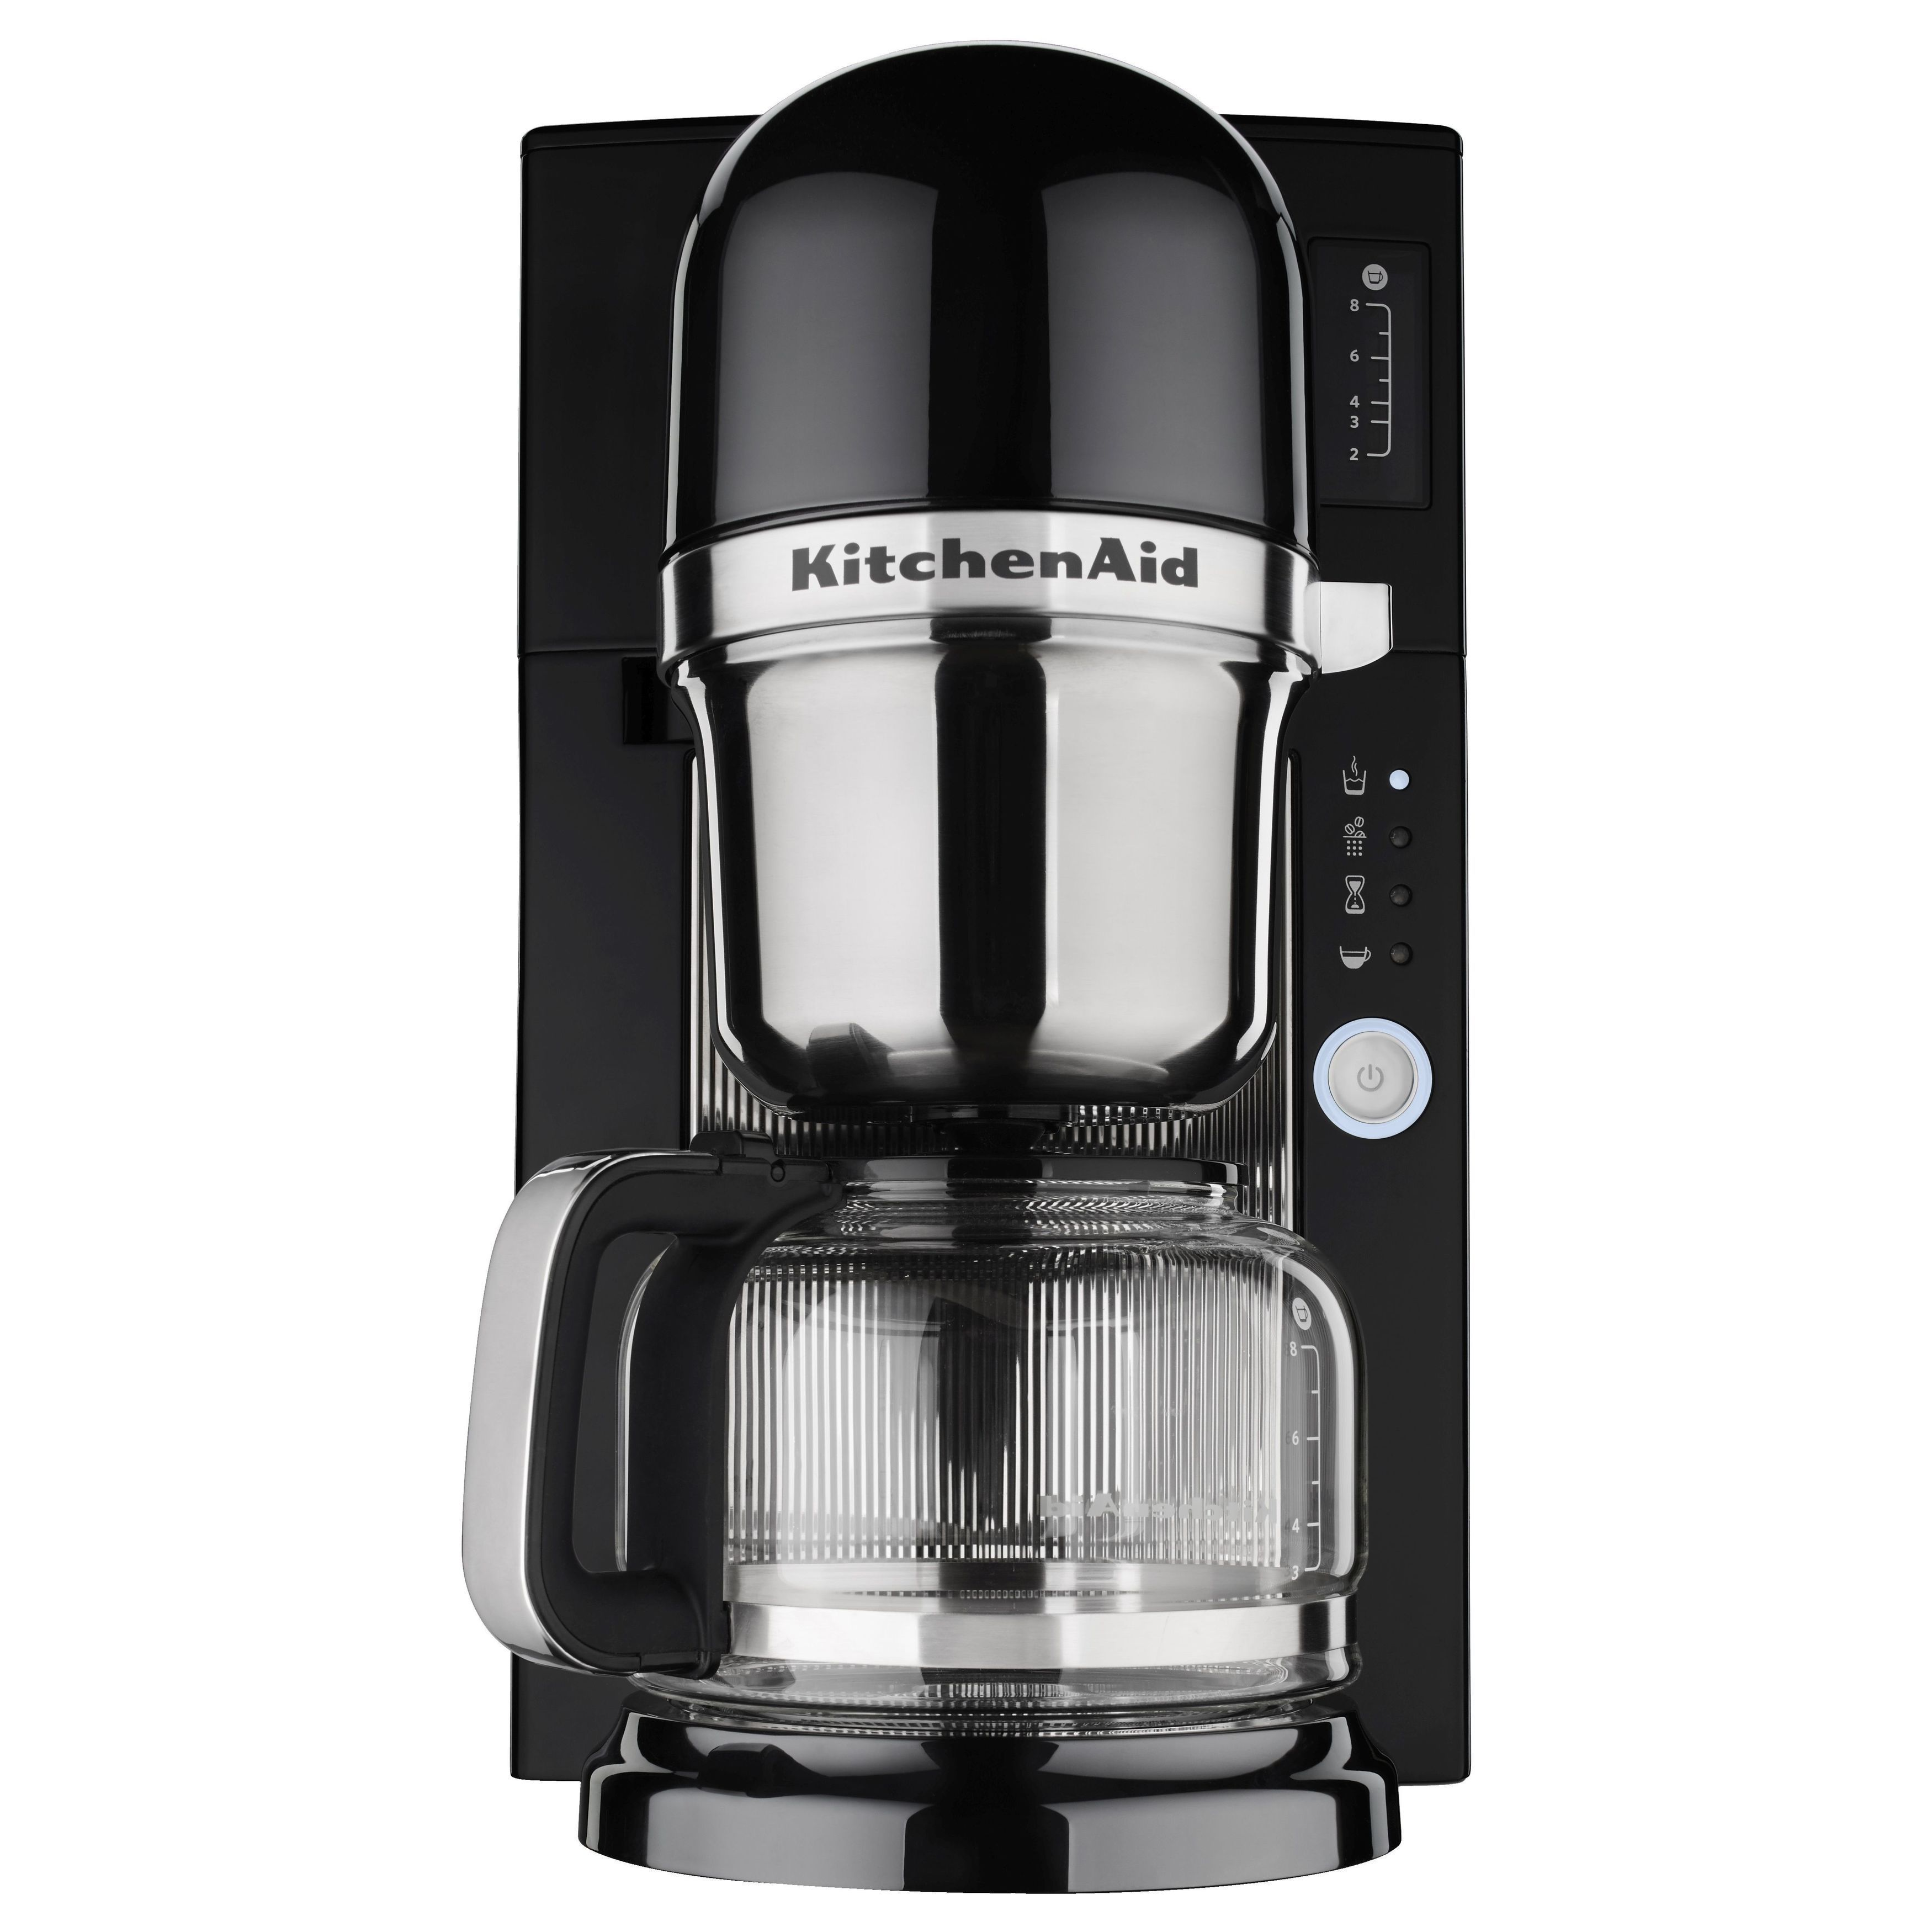 Kitchenaid Kcm0801ob Onyx 8 Cup Pour Over Coffee Brewer